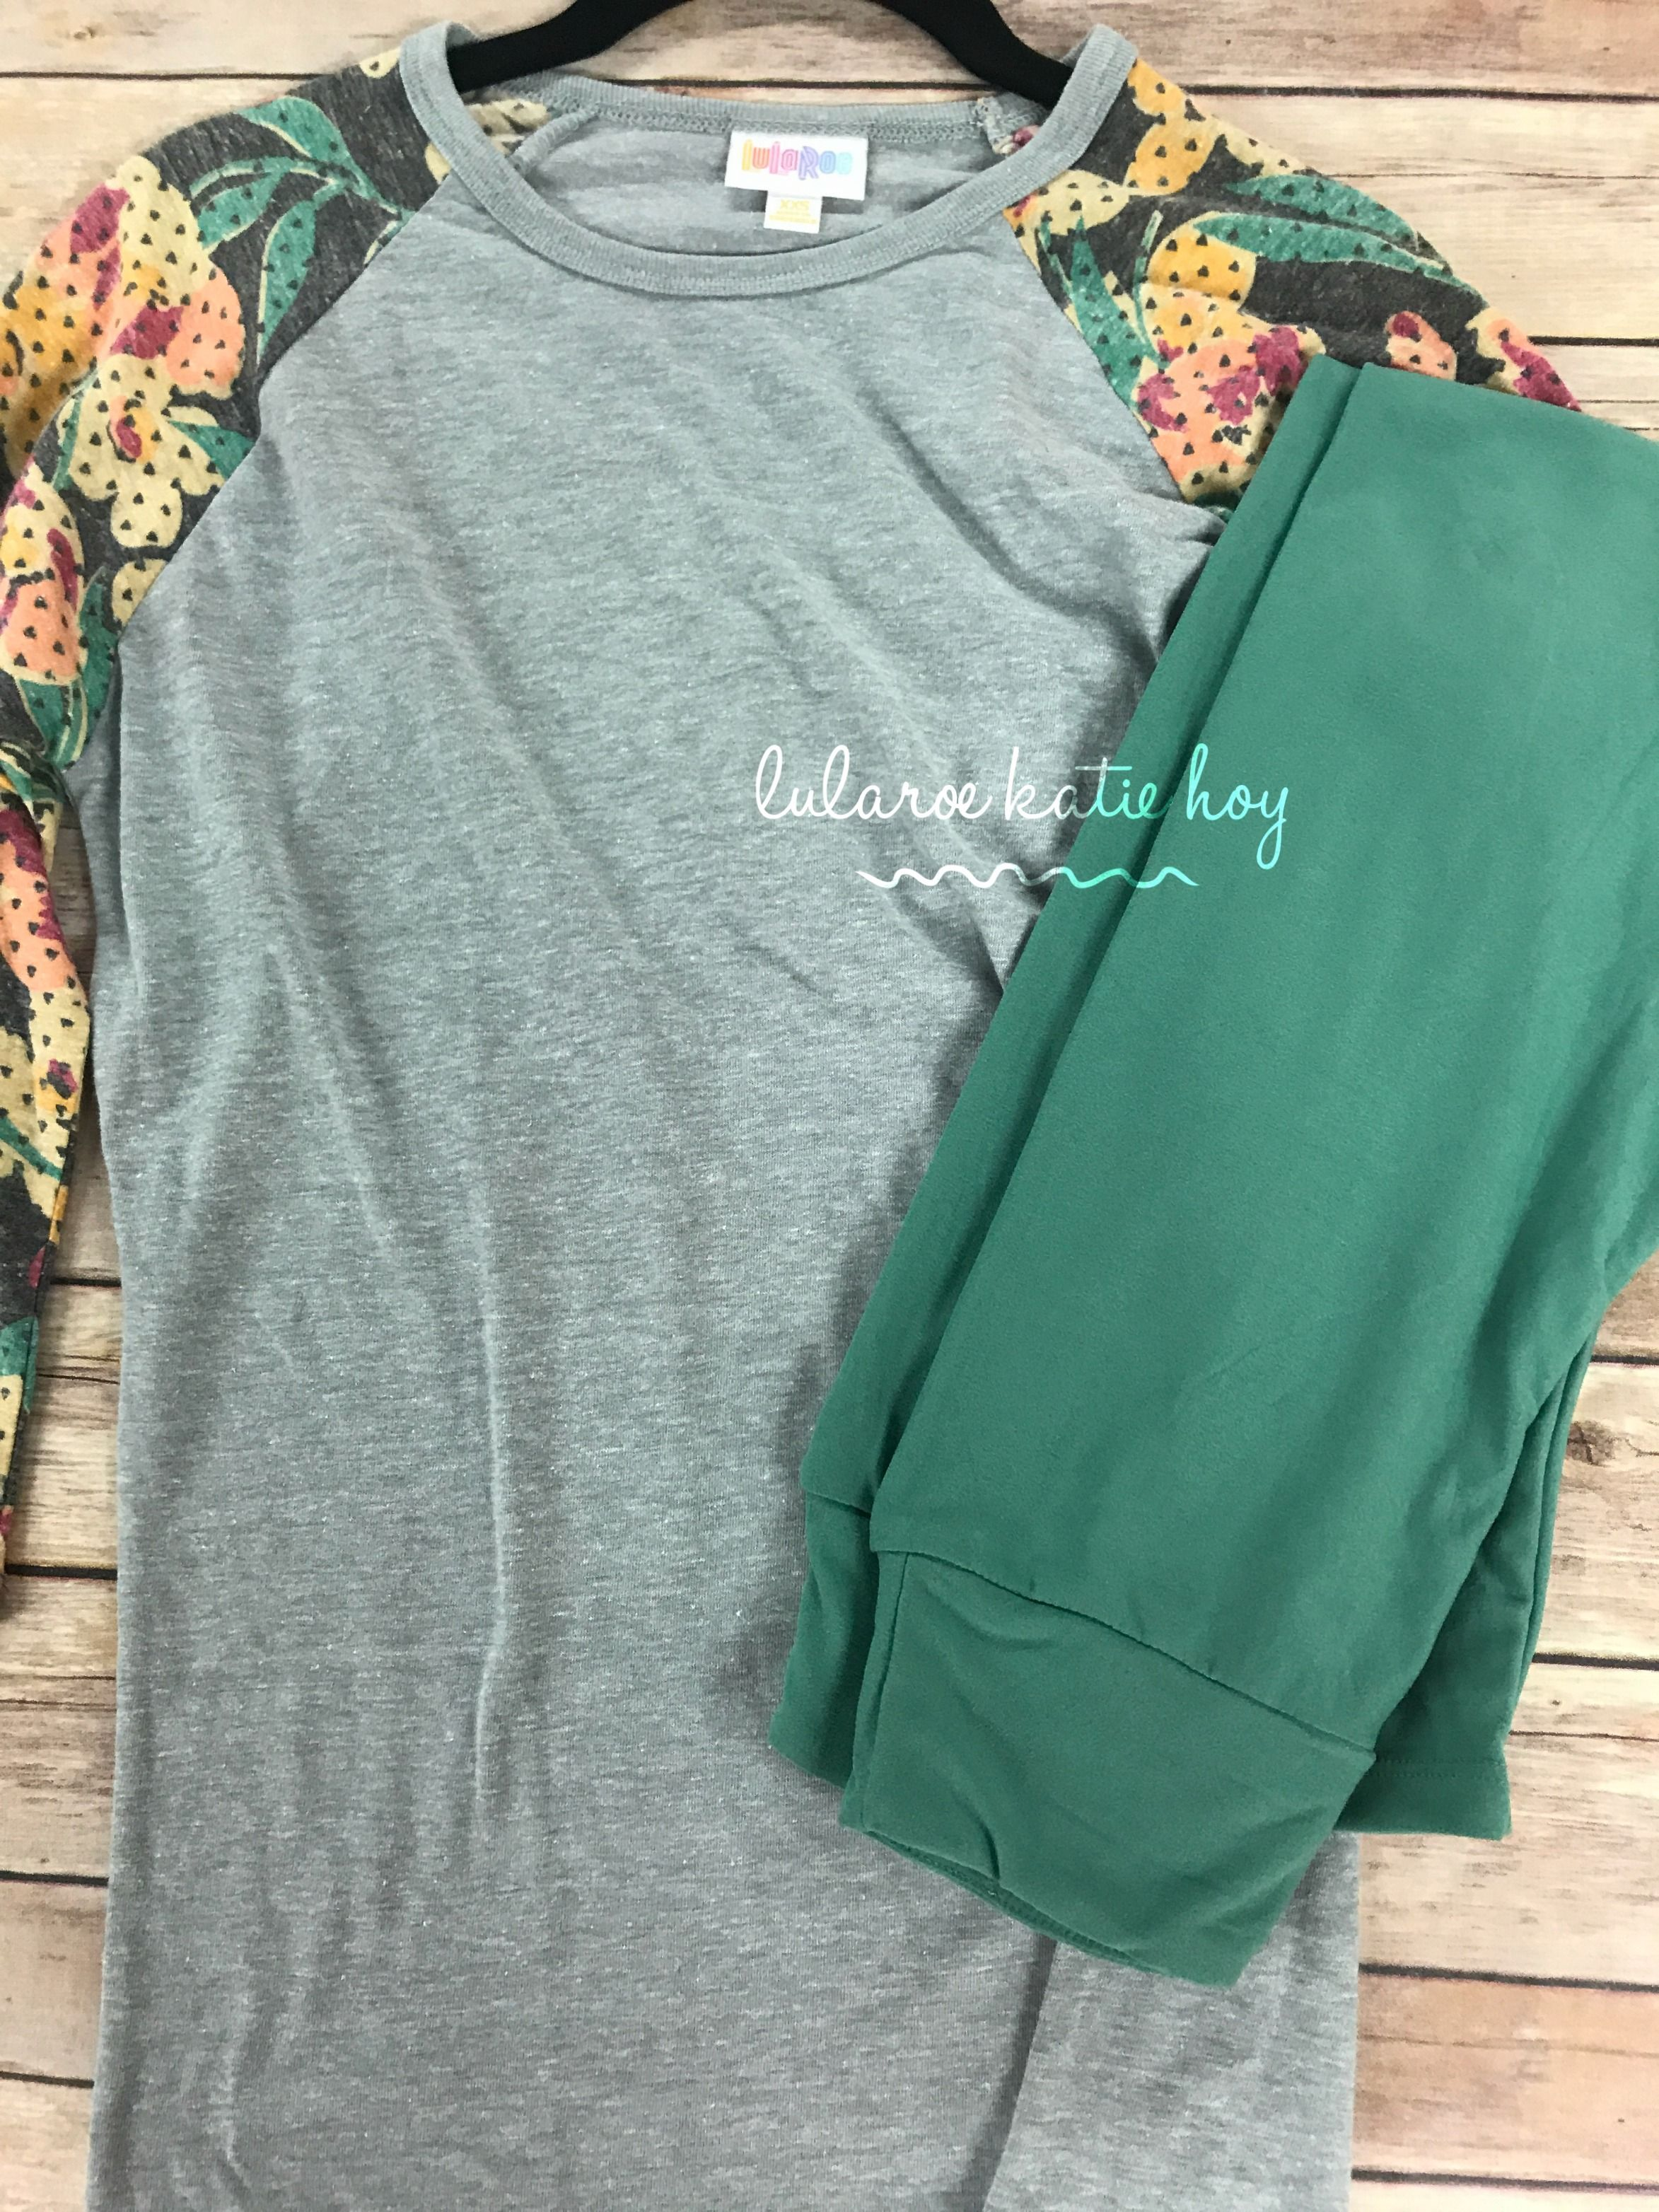 Green t shirt dress outfit  Hereus a great outfit for the teens in your life XXS LuLaRoe Randy